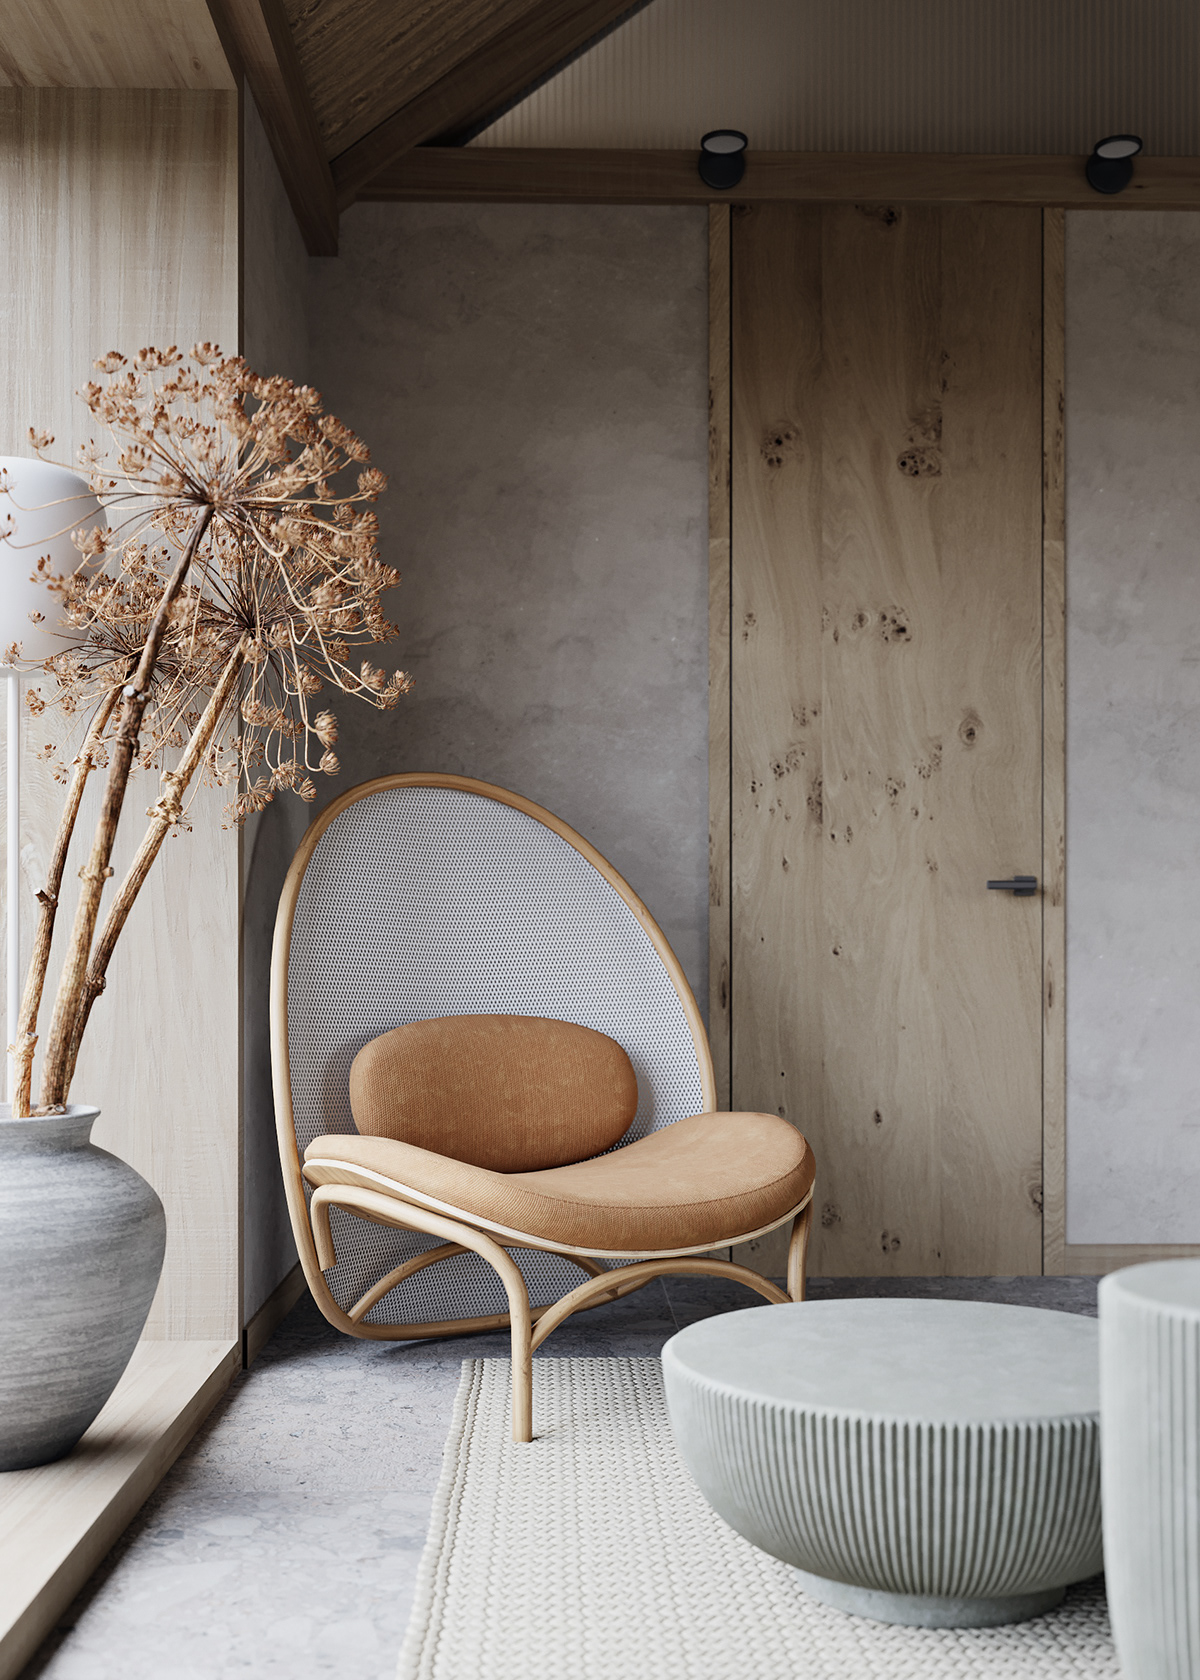 designer chair and tall seed heads sit in a modern space